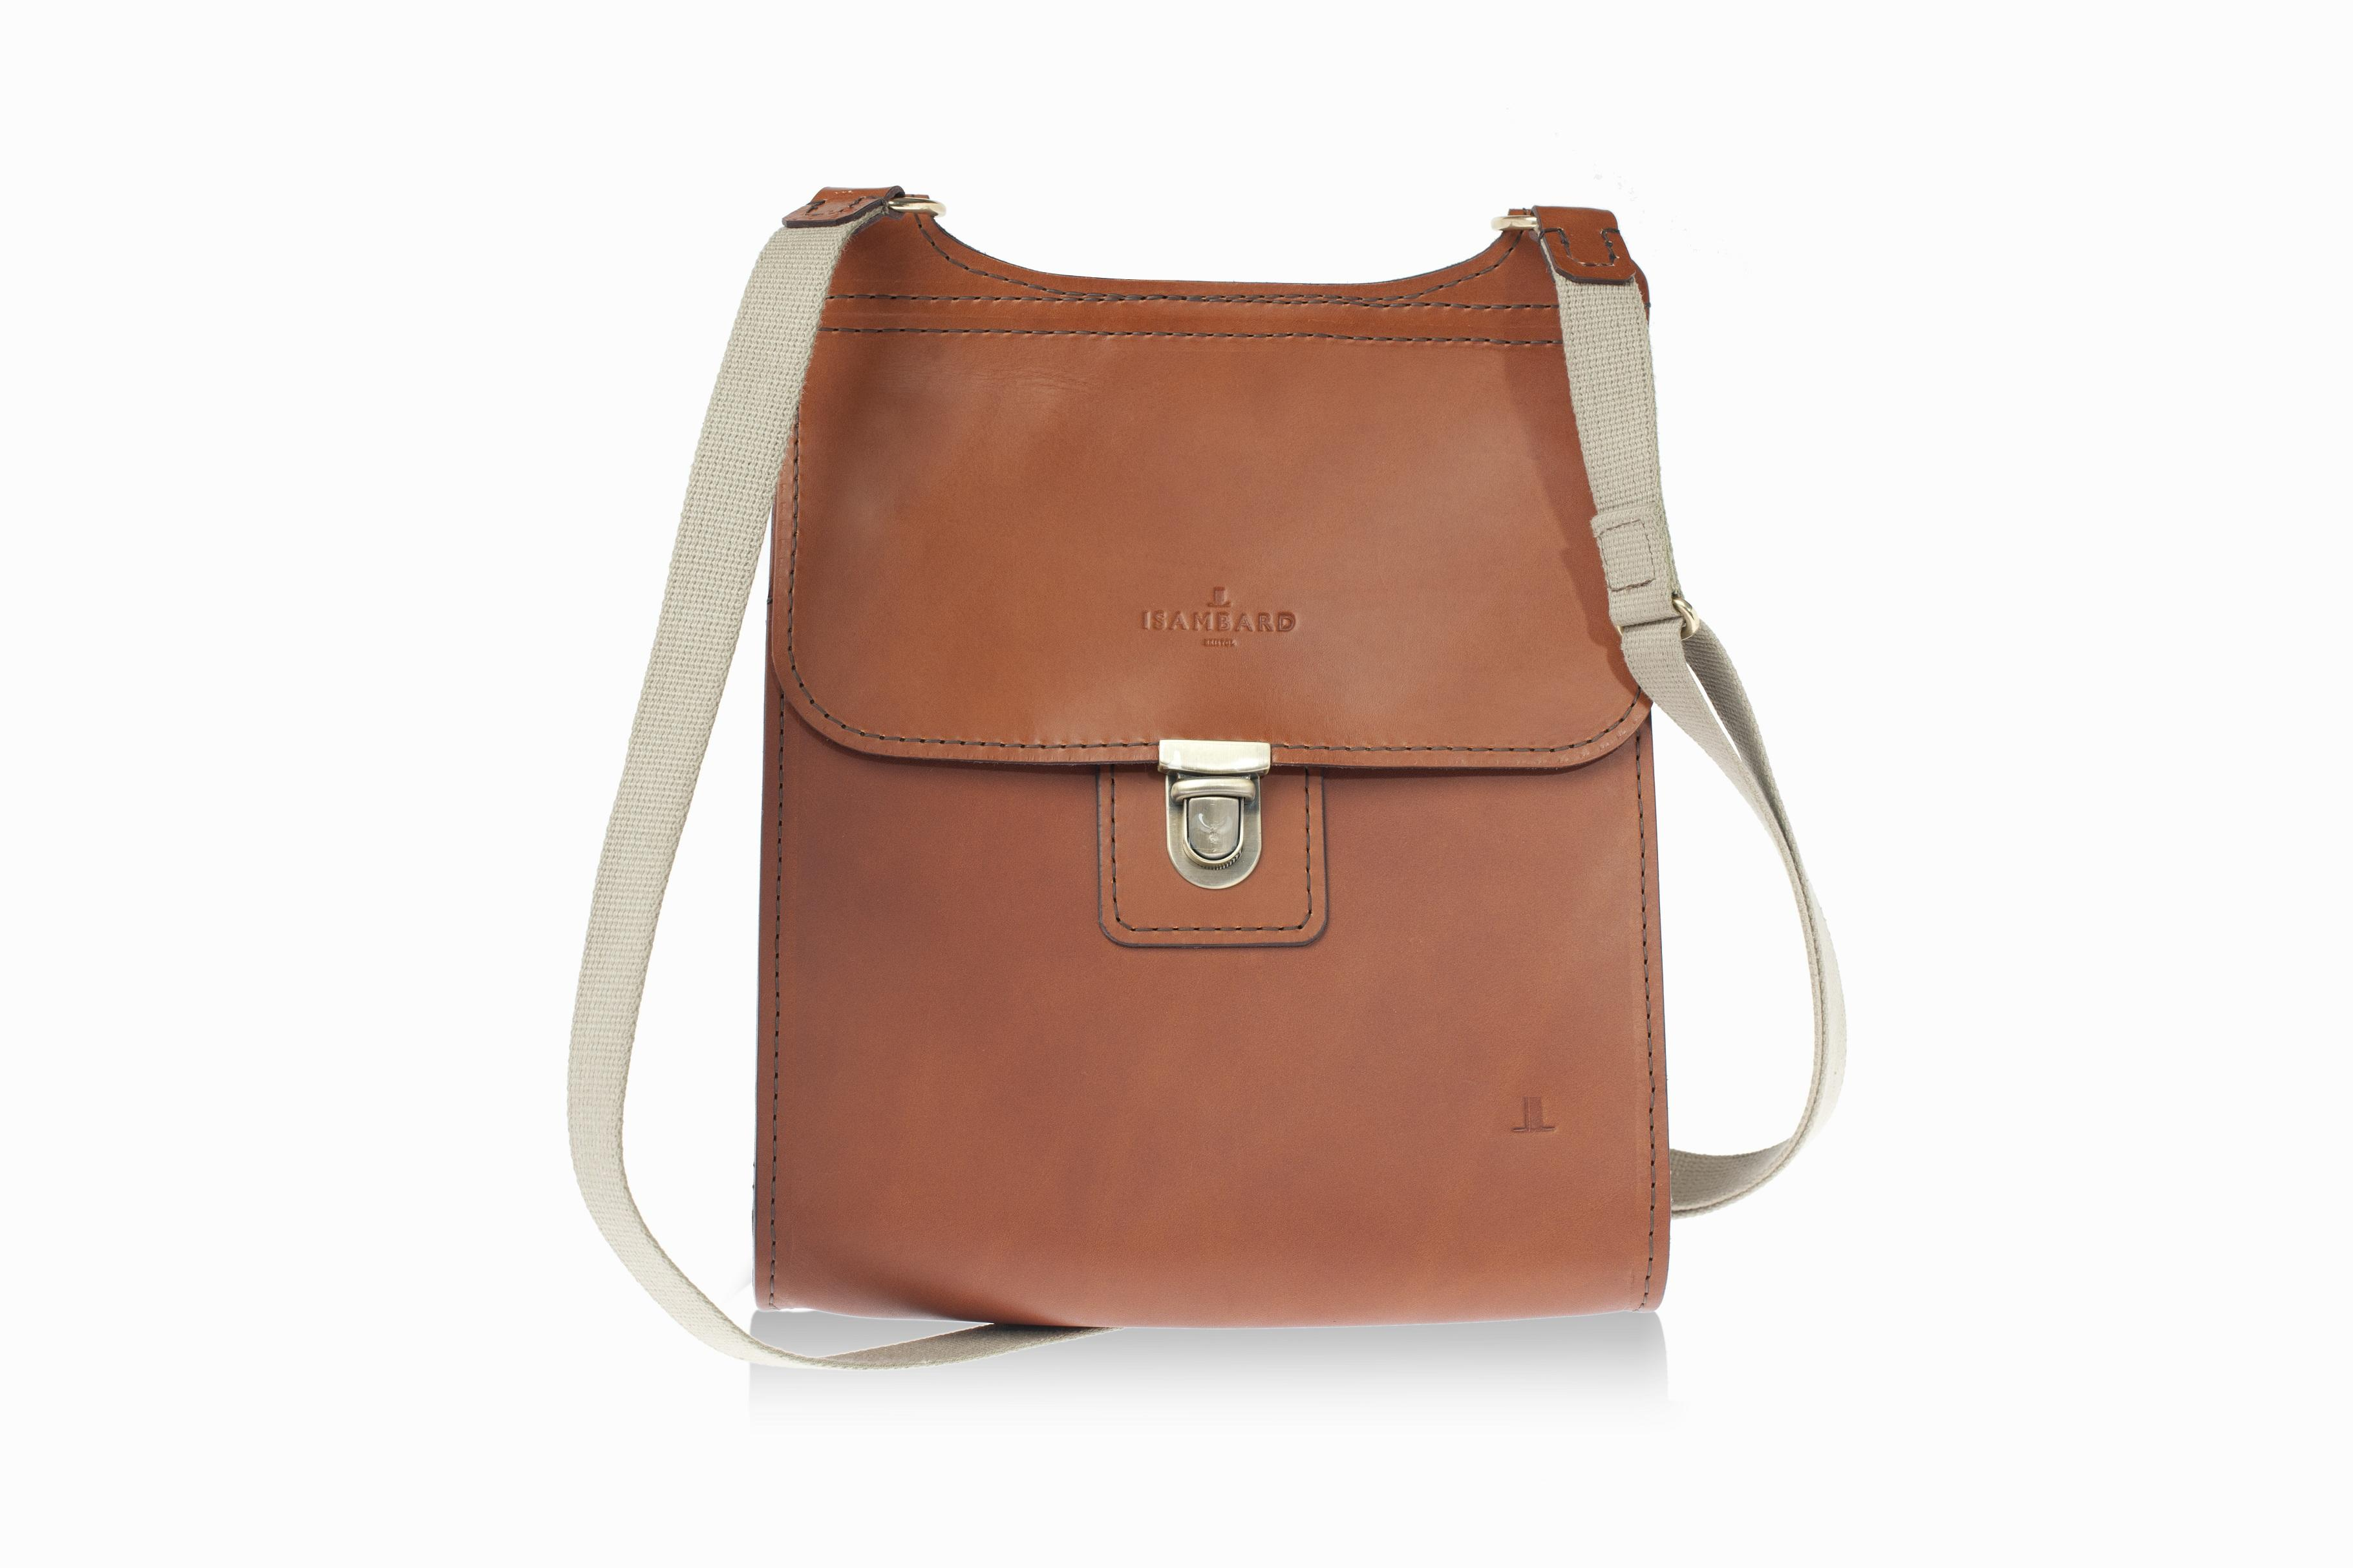 ISAMBARD Large Clifton Messenger - Saddle Bag In Cognac Natural